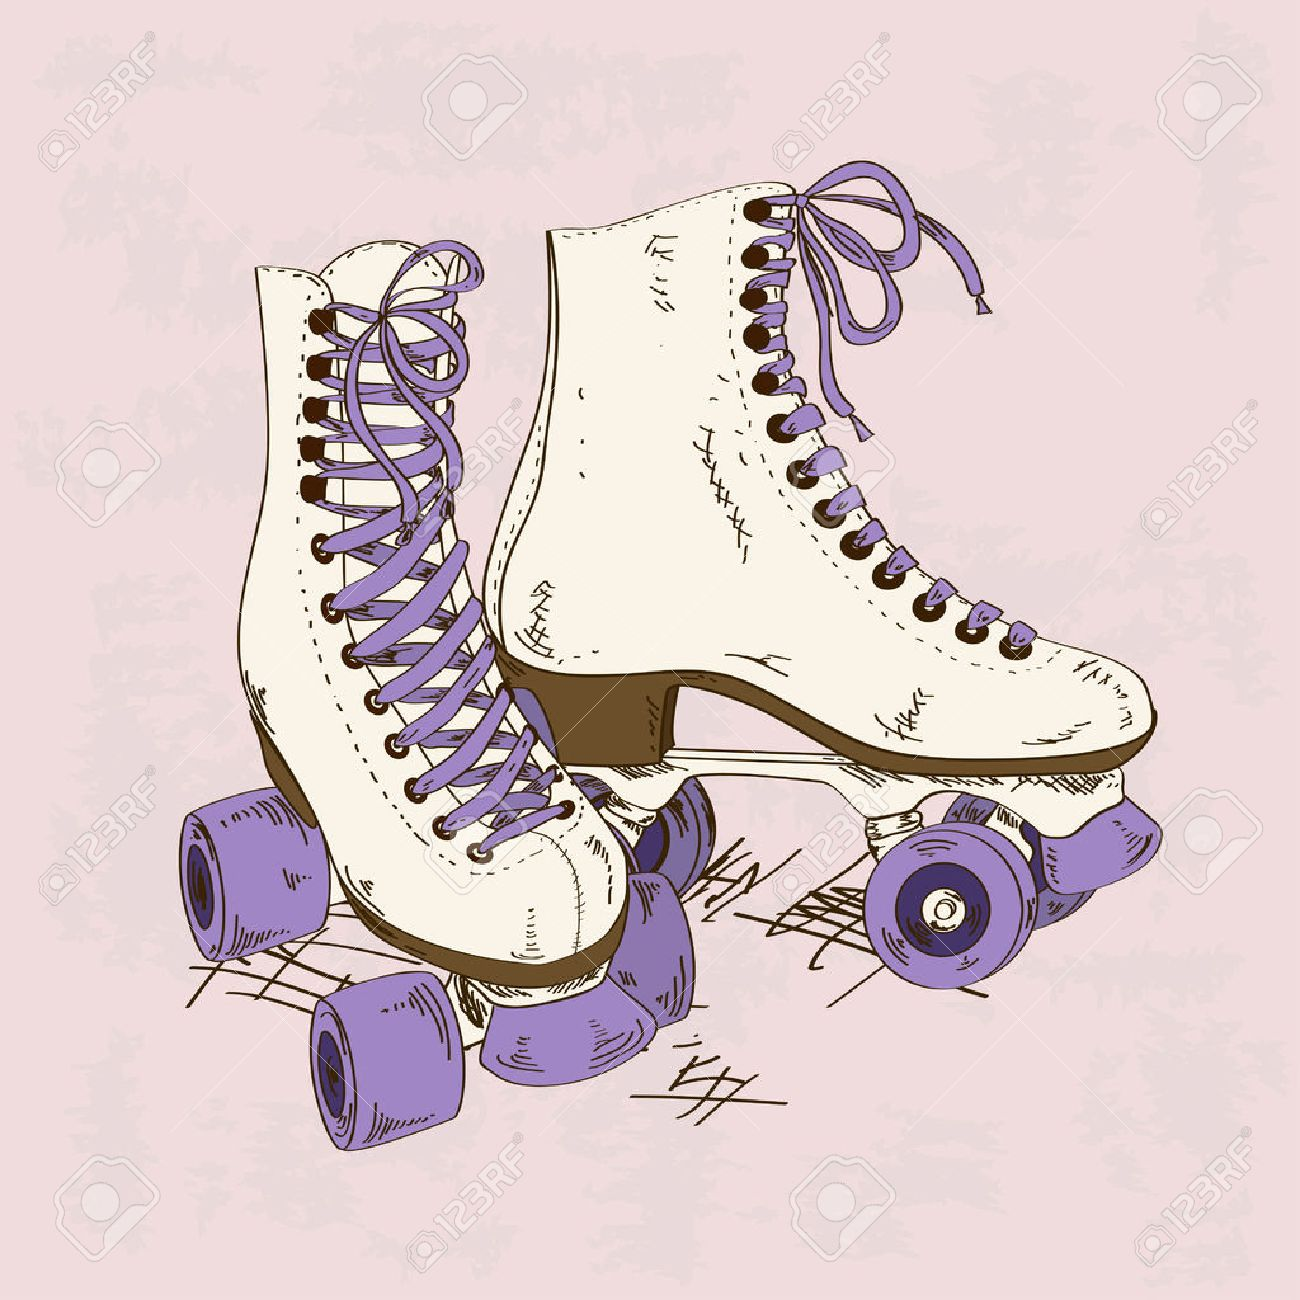 Illustration with retro roller skates on a grunge background Stock Vector - 24382437